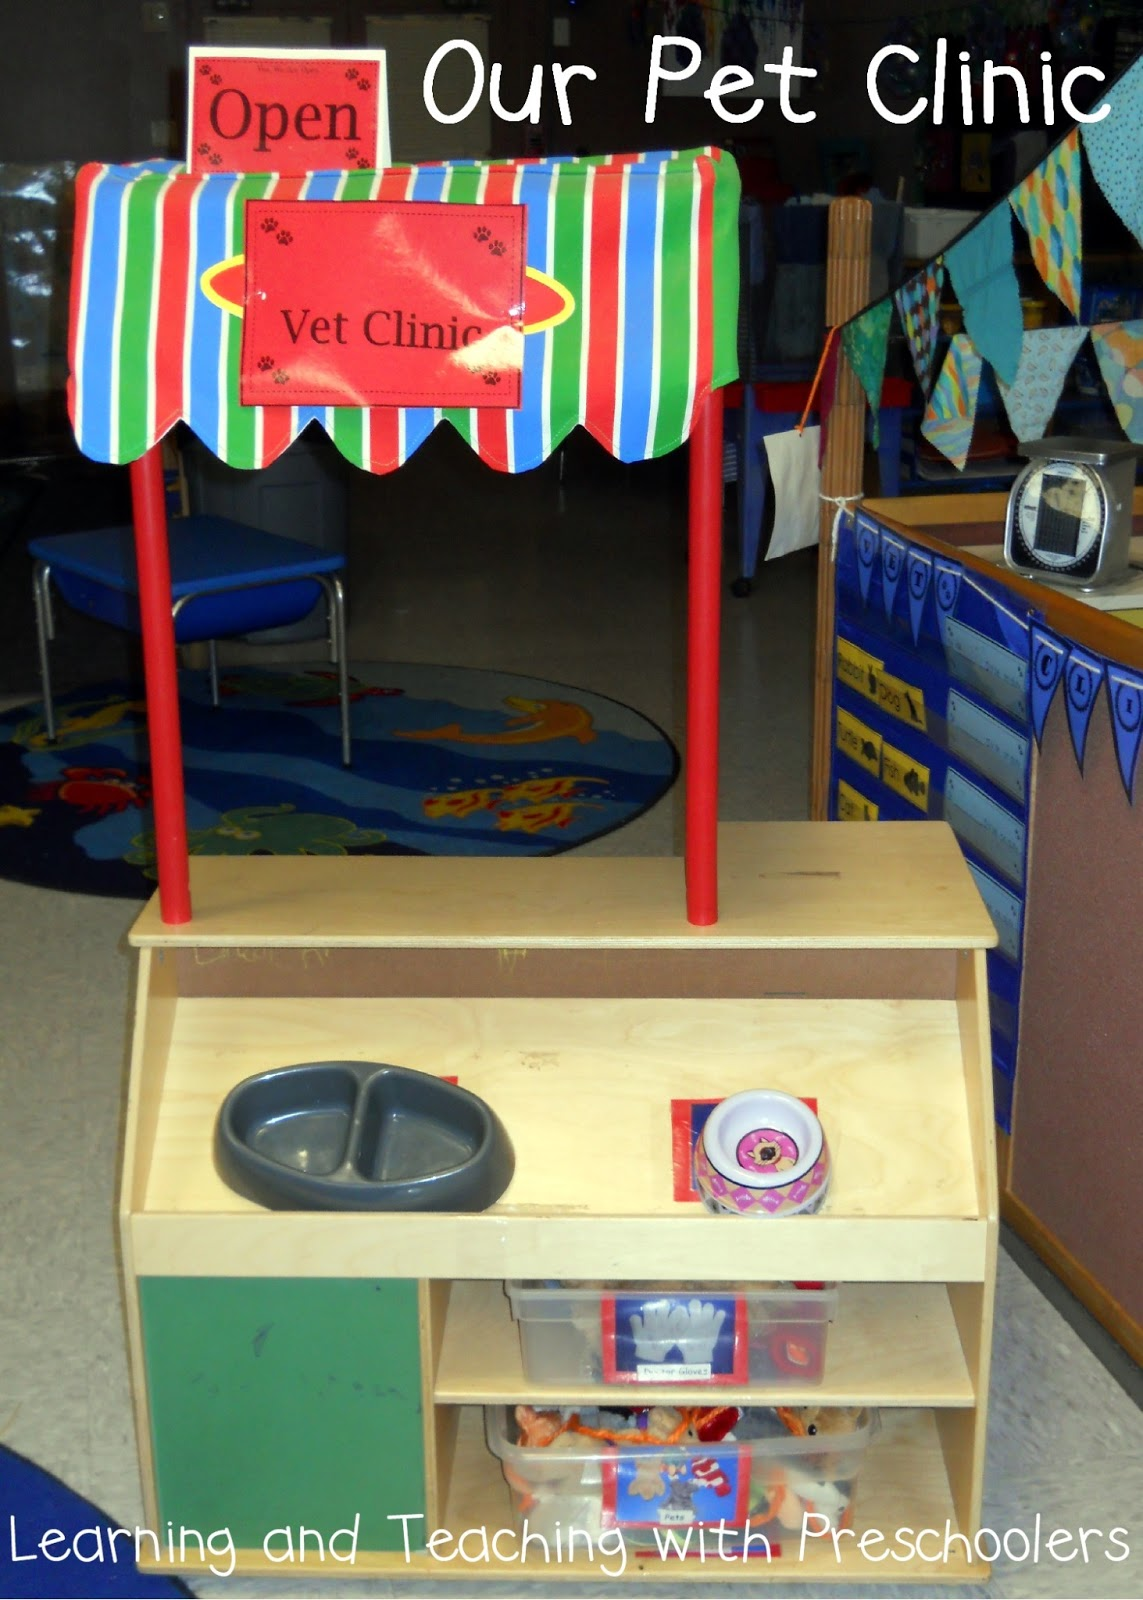 How To Set Up A Play Veterinary Clinic For Kids